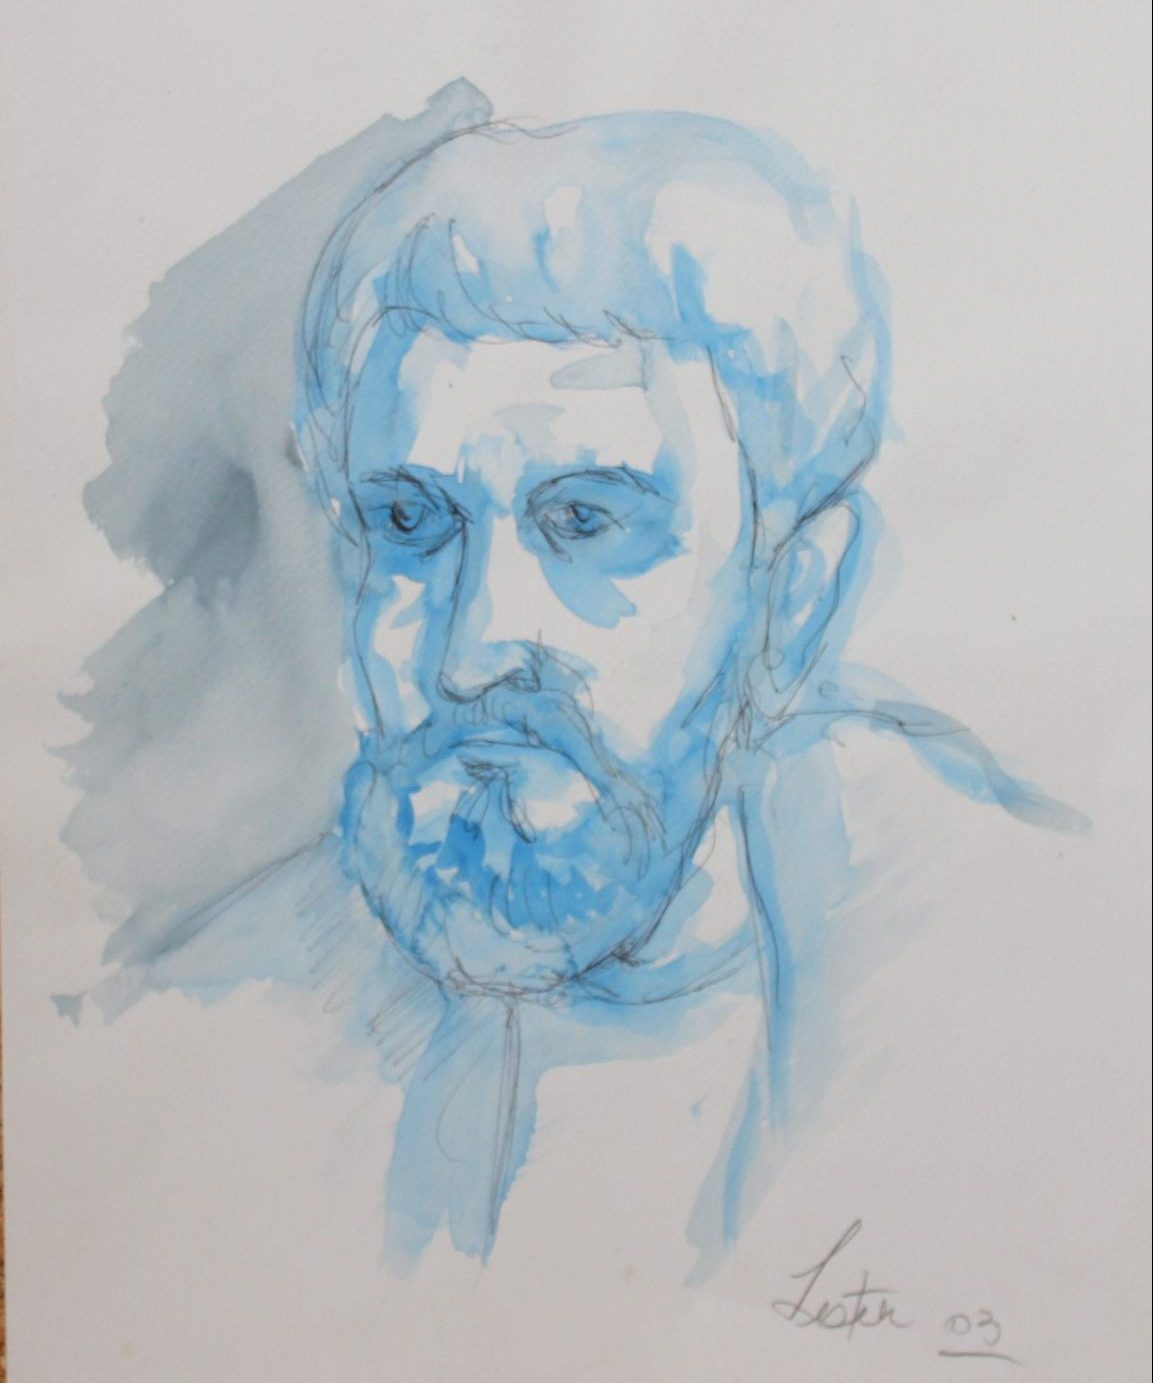 blue painted sketch of man with beard